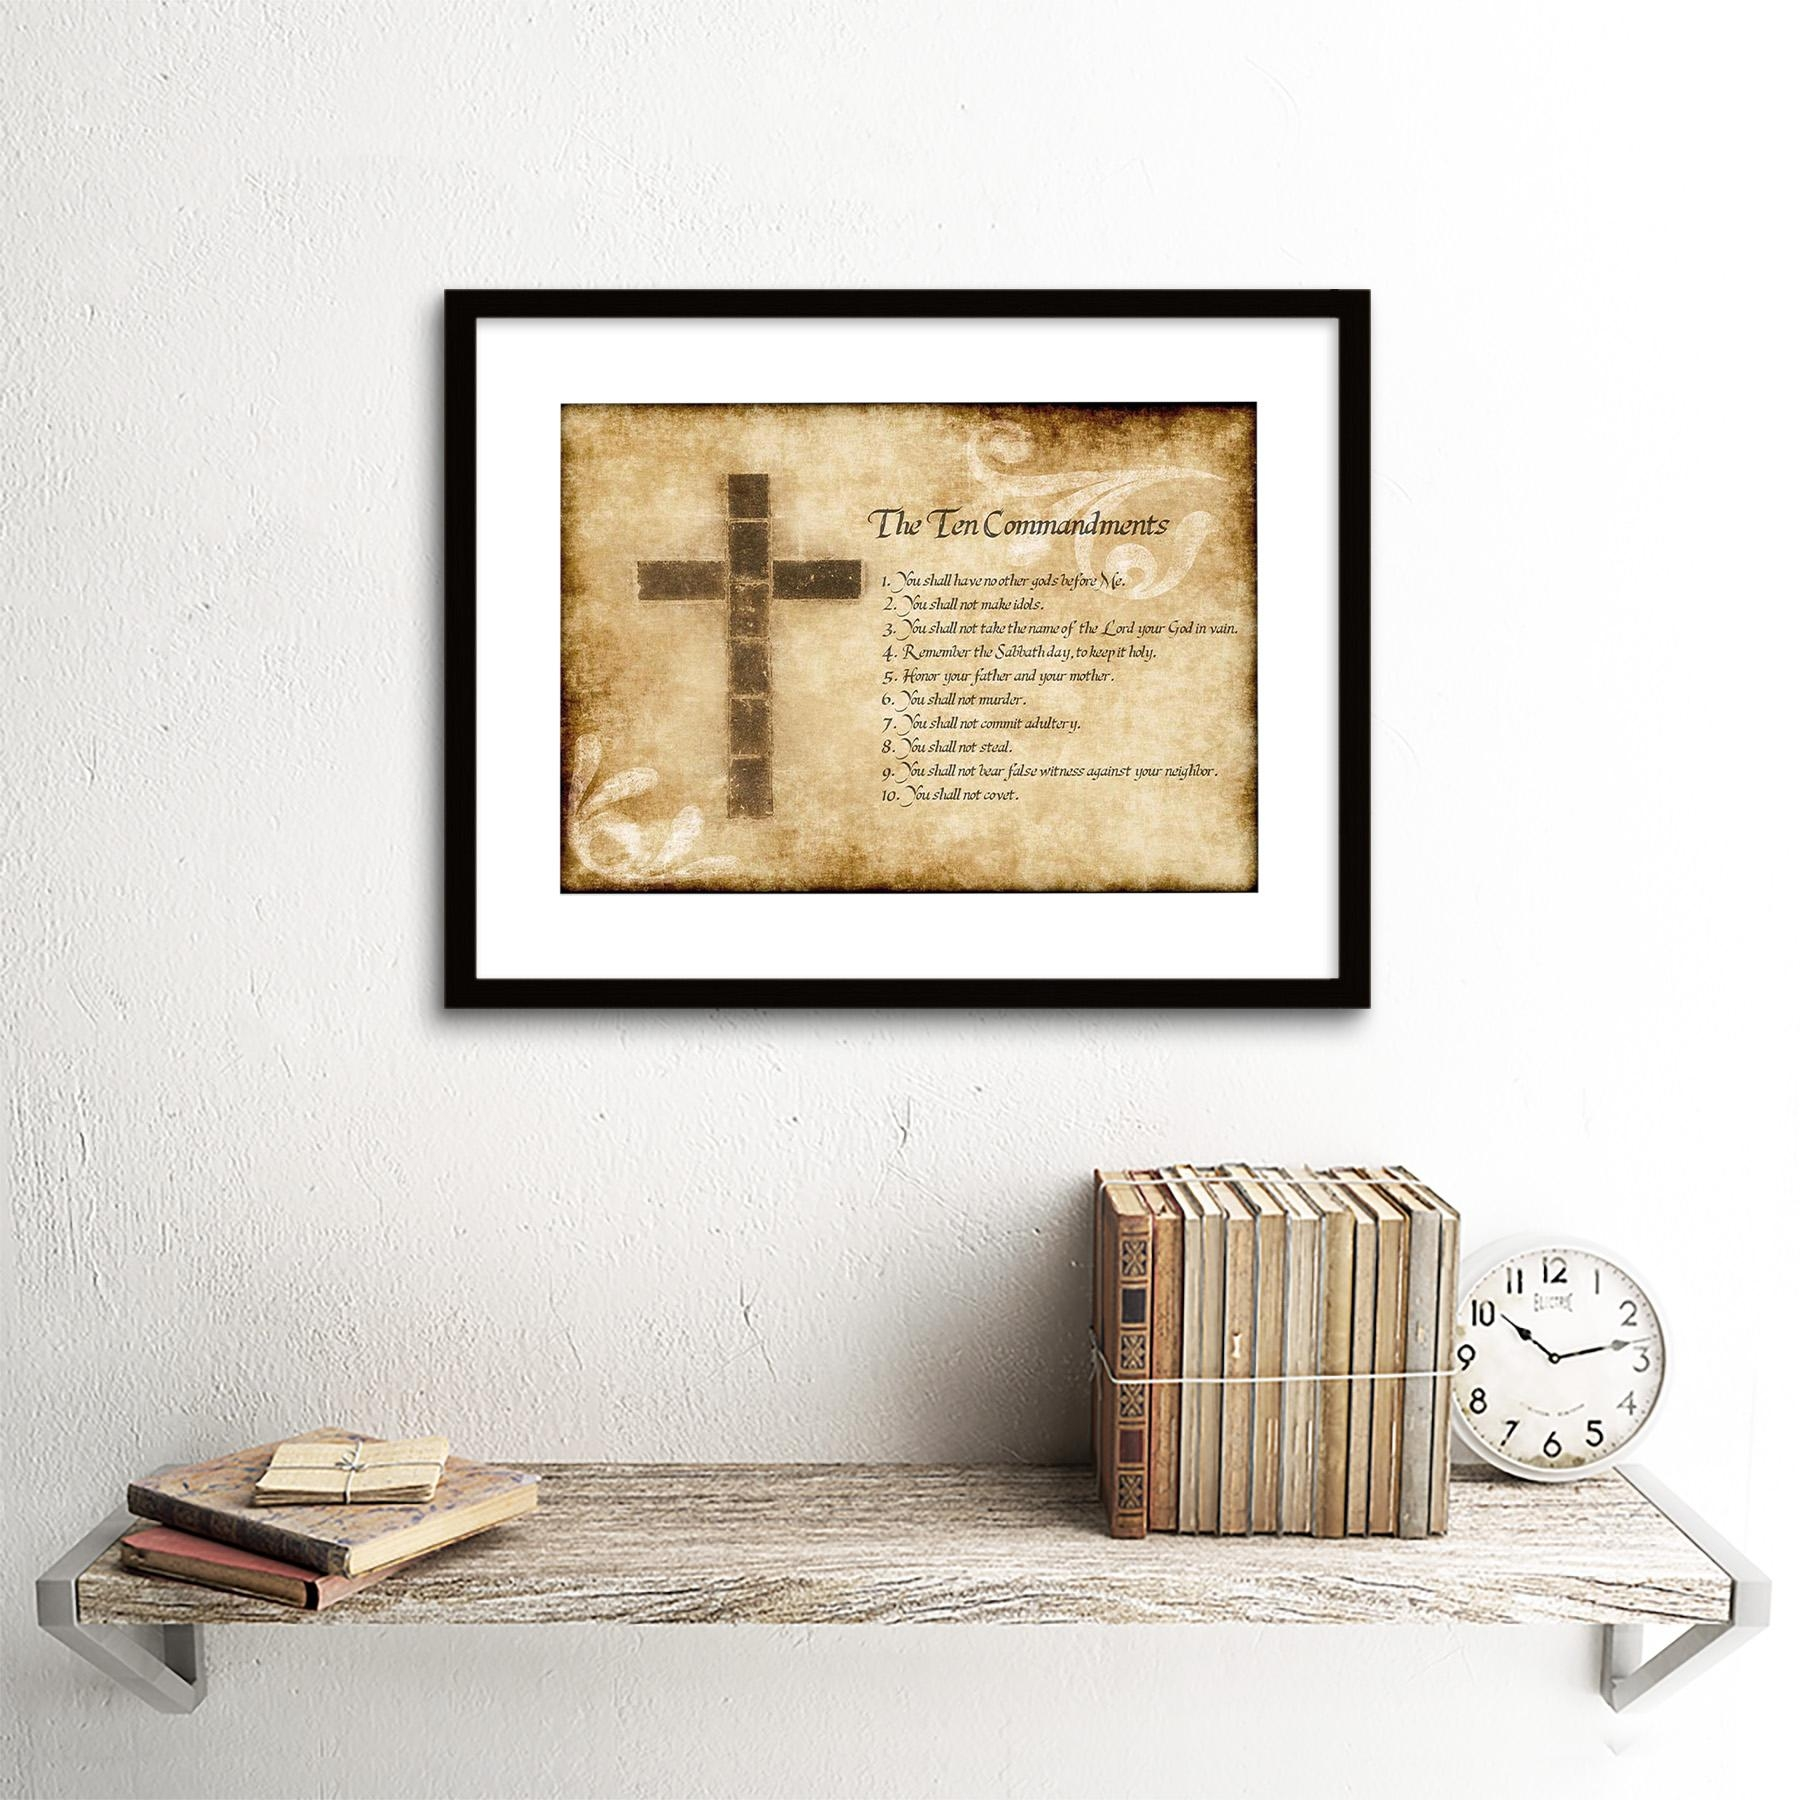 Best 40+ Ten Commandments Wall Art Design Inspiration Of Wall (Image 11 of 20)